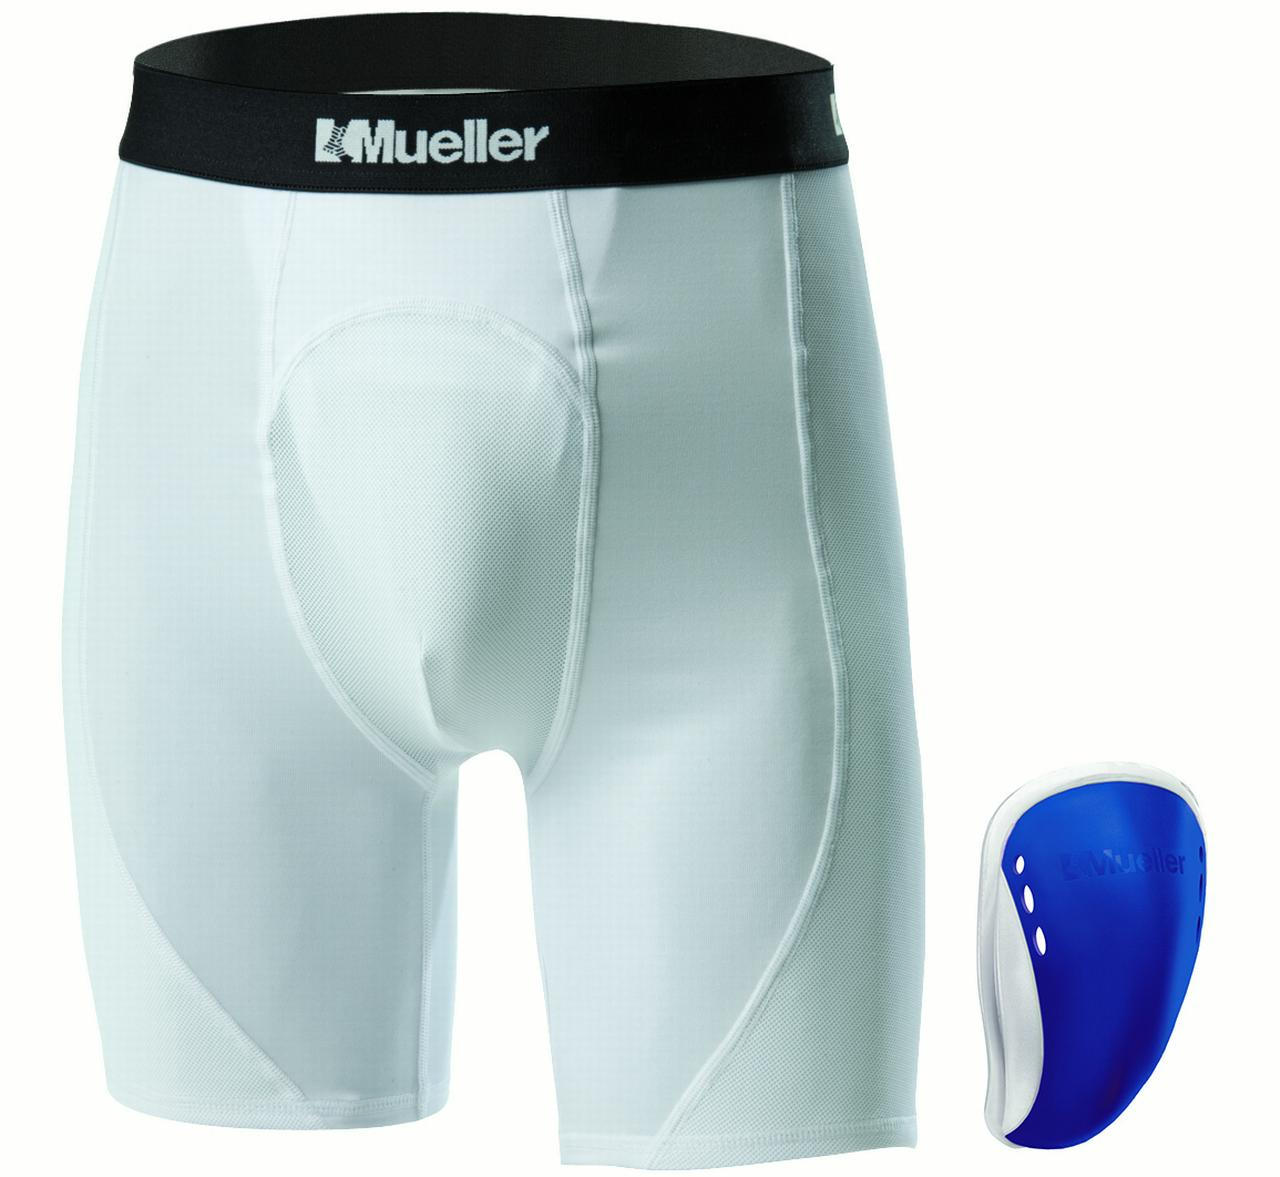 MUELLER YOUTH ATH SUP SHORT FLEX SHIELD CUP-REG